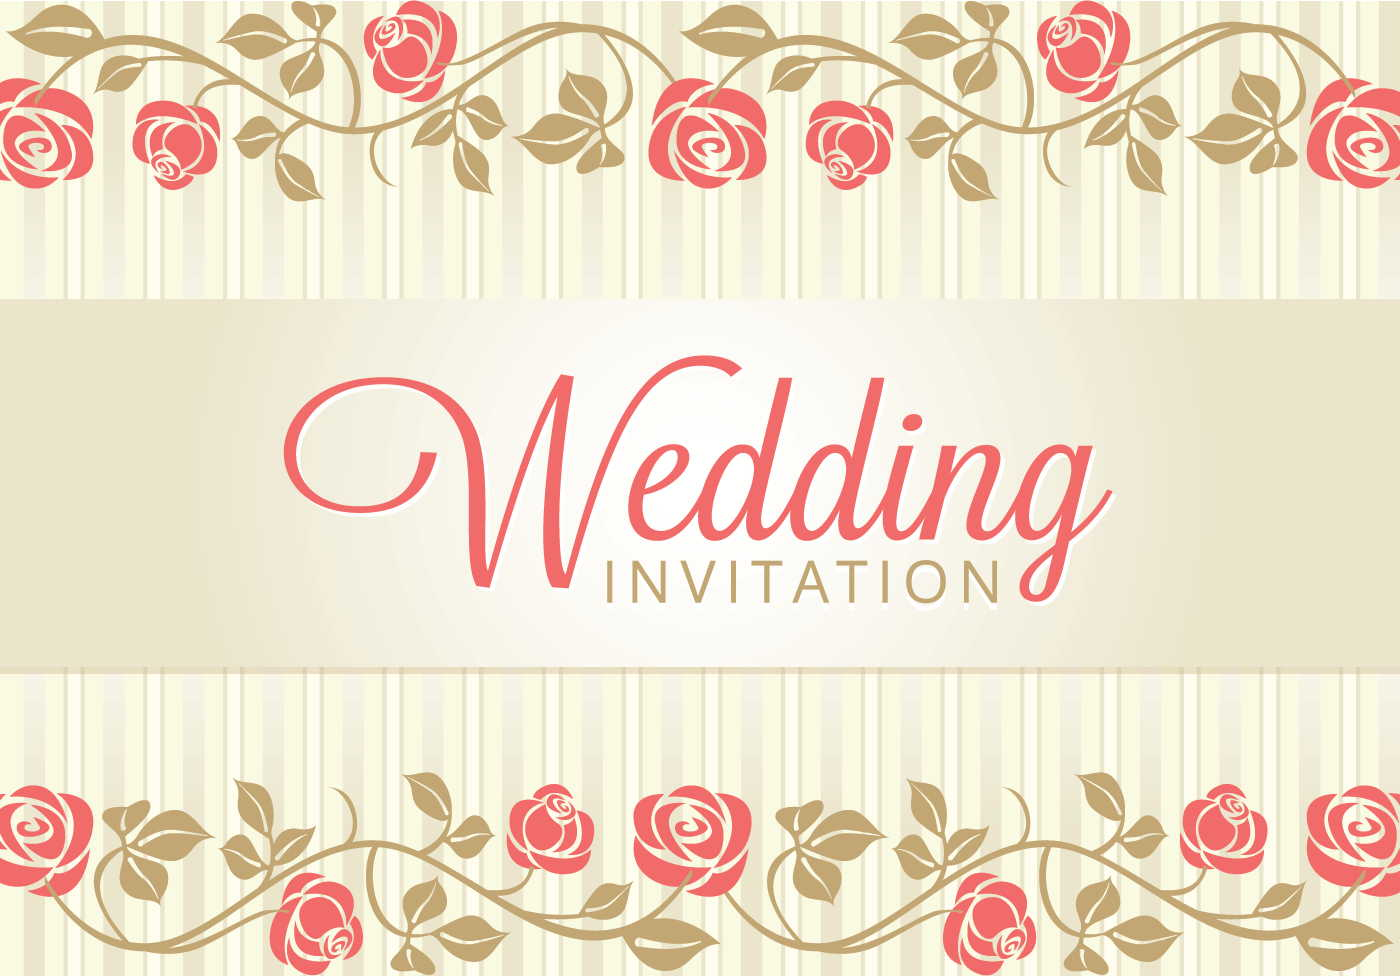 Invitation Wedding Card: Vintage Wedding Backgrounds